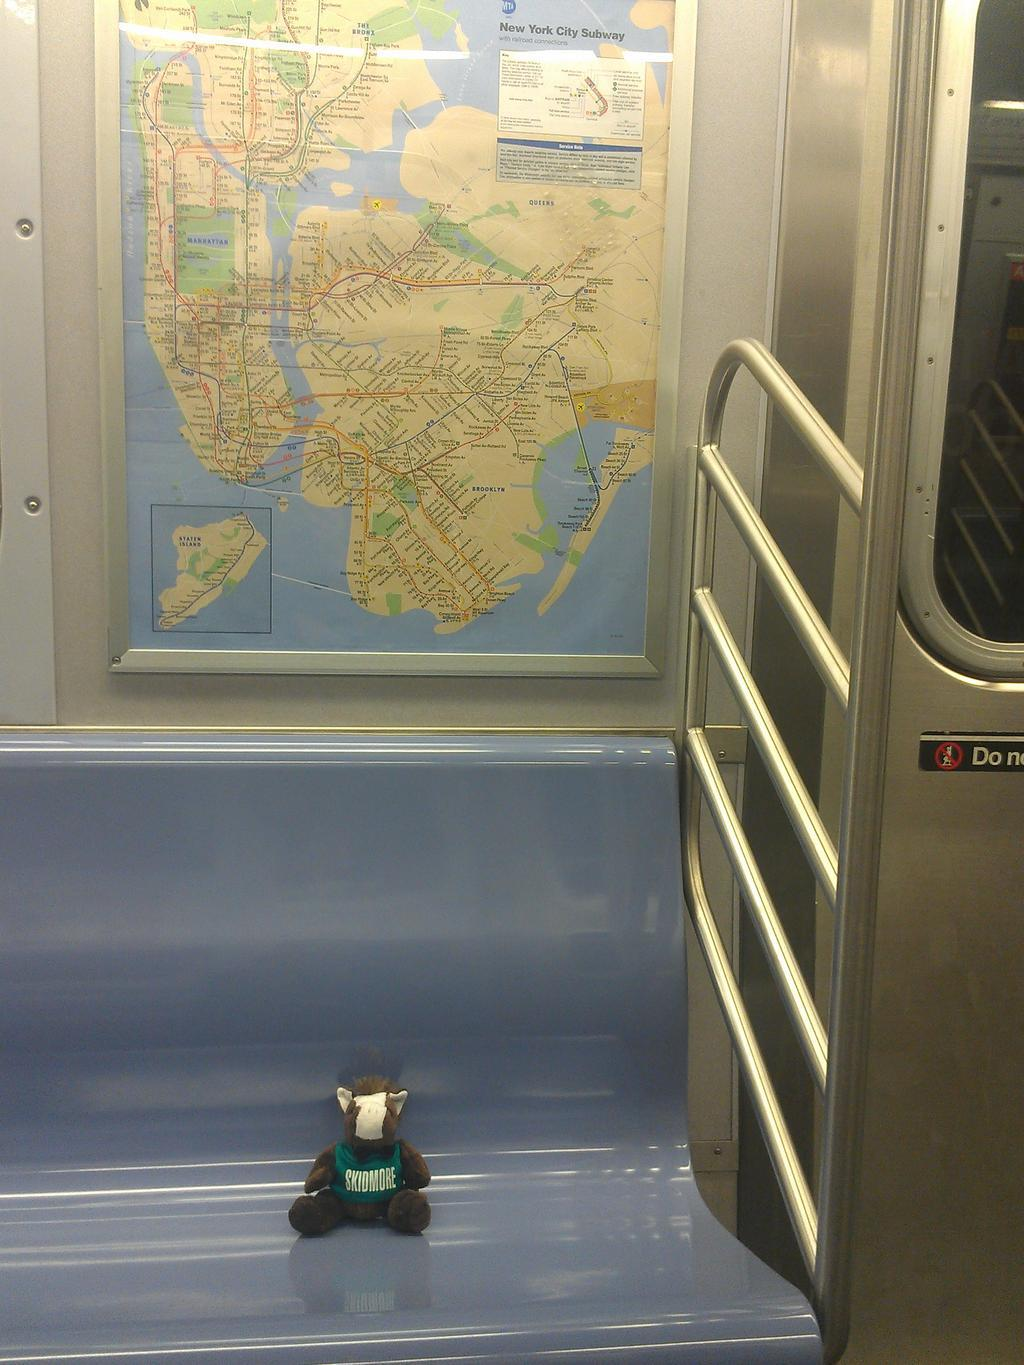 %23SkidsOnTheLoose%20in%20the%20NYC%20subway.%20Looking%20for%20that%20%40gregmocker%20guy.%20